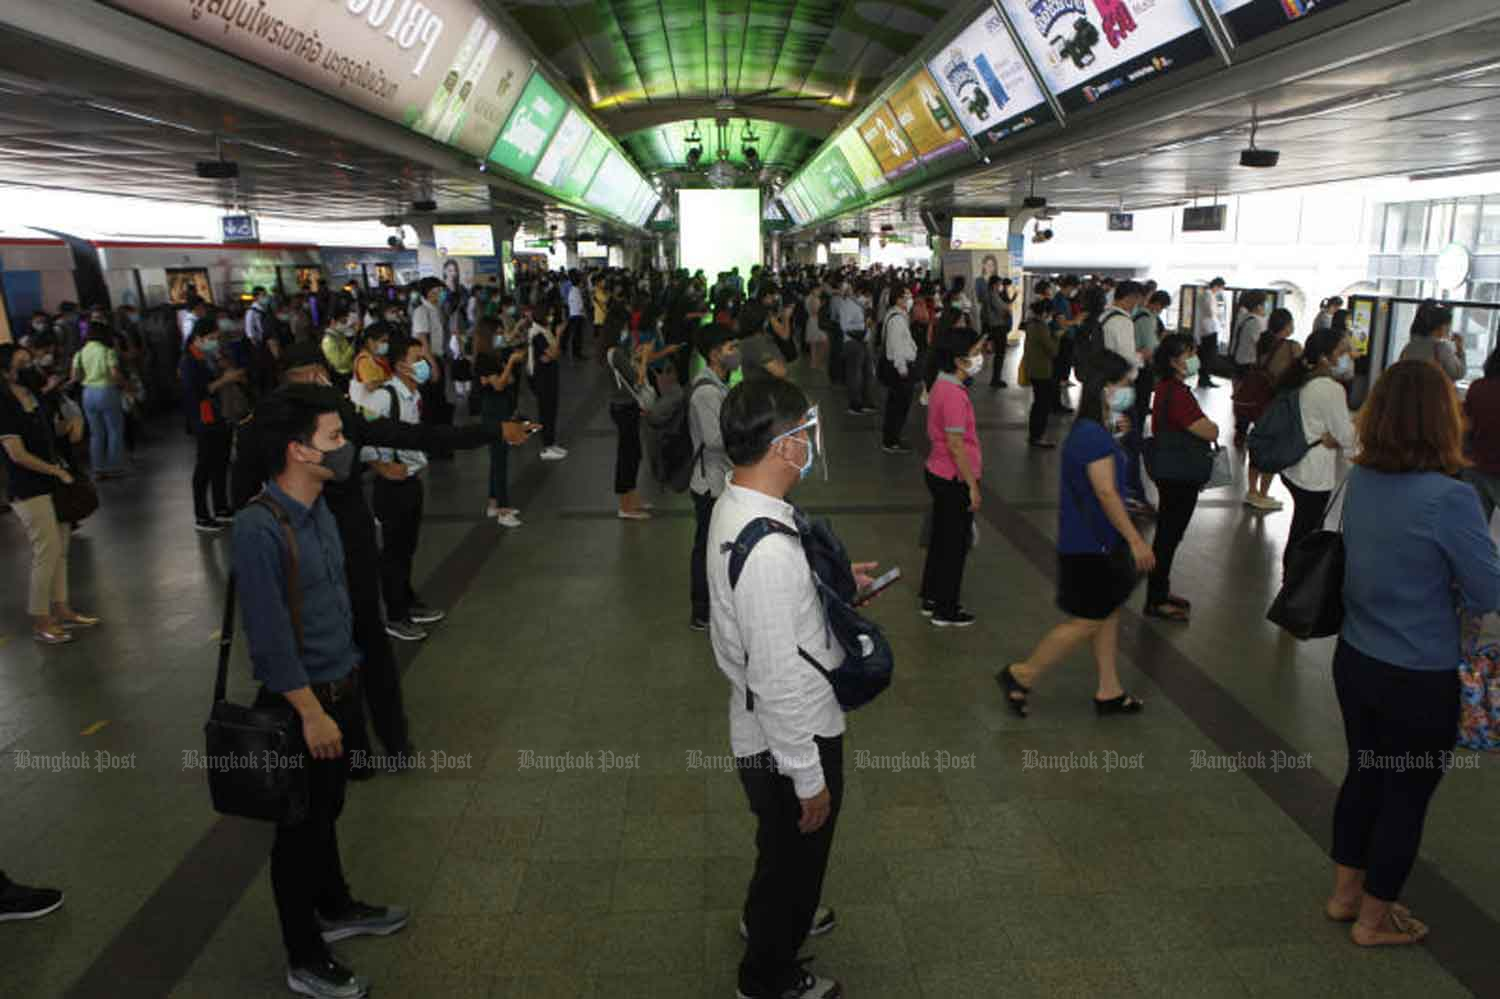 Social distancing is imposed at the Siam station of the BTS skytrain in Bangkok on Thursday. (Photo: Nutthawat Wicheanbut)